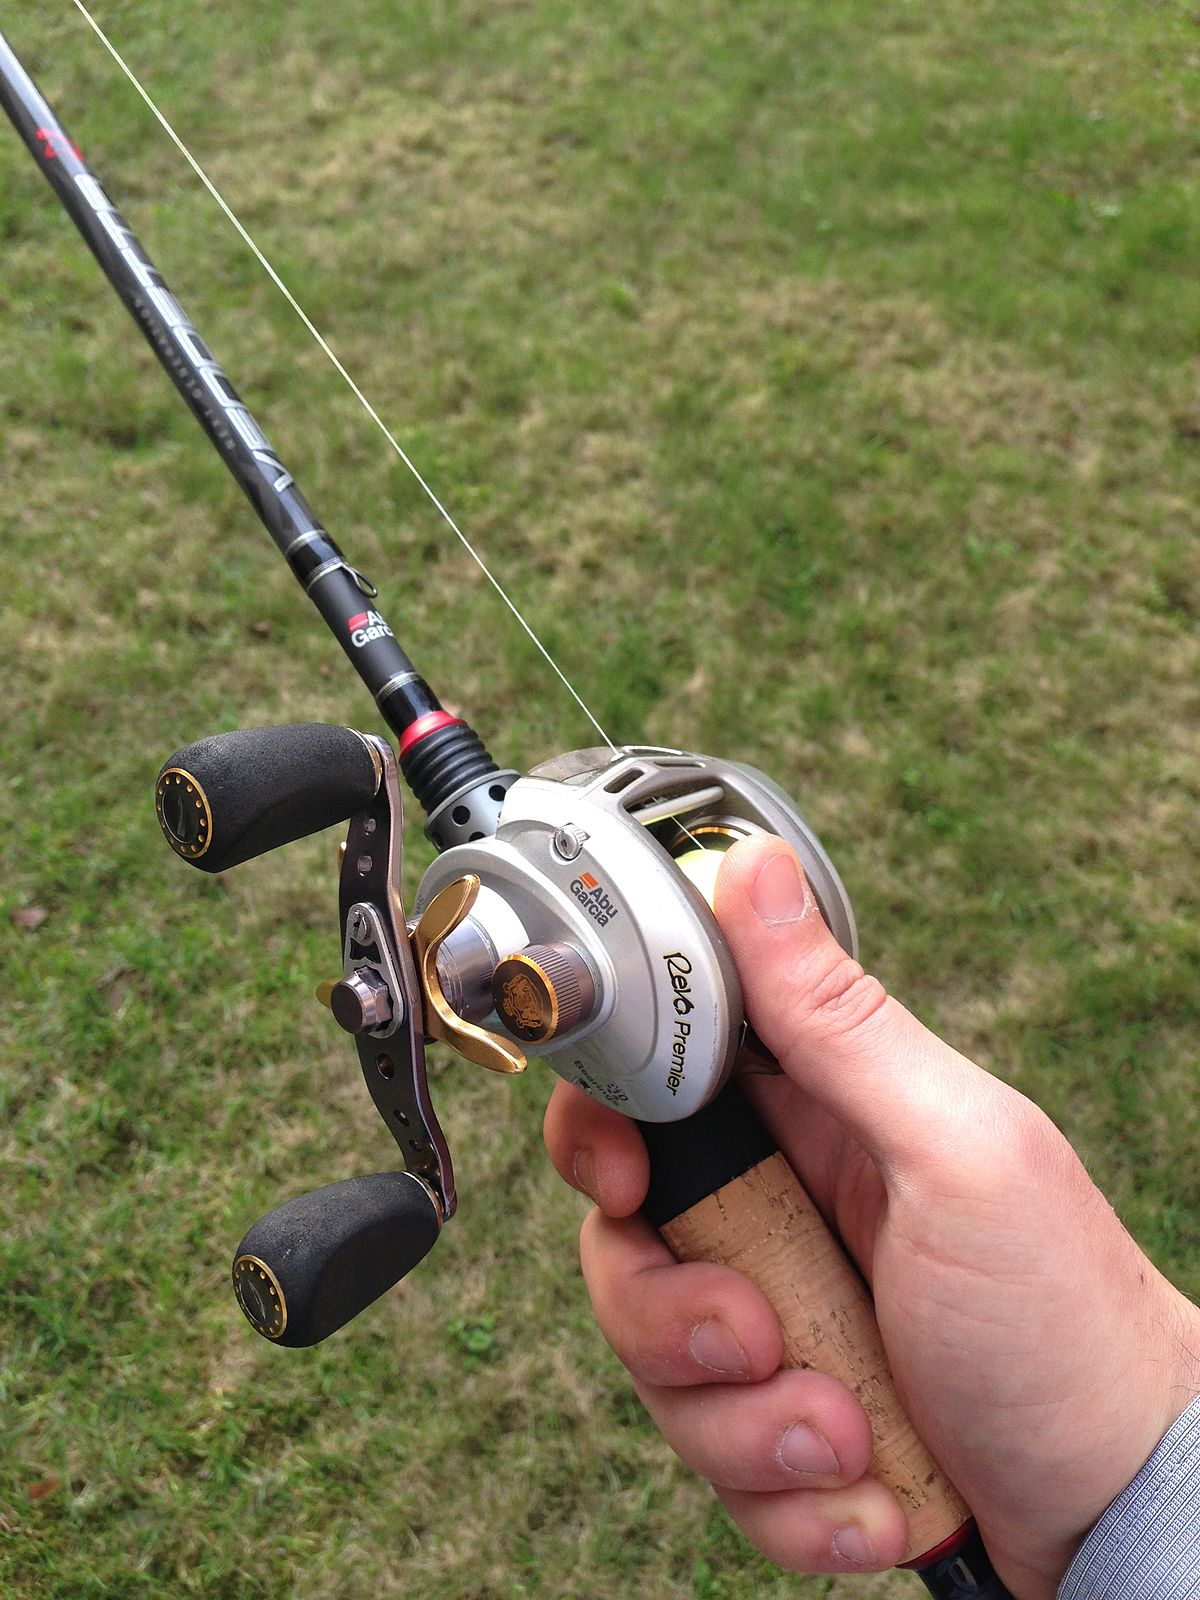 Fishing reel simple english wikipedia the free encyclopedia for Fishing rods and reels